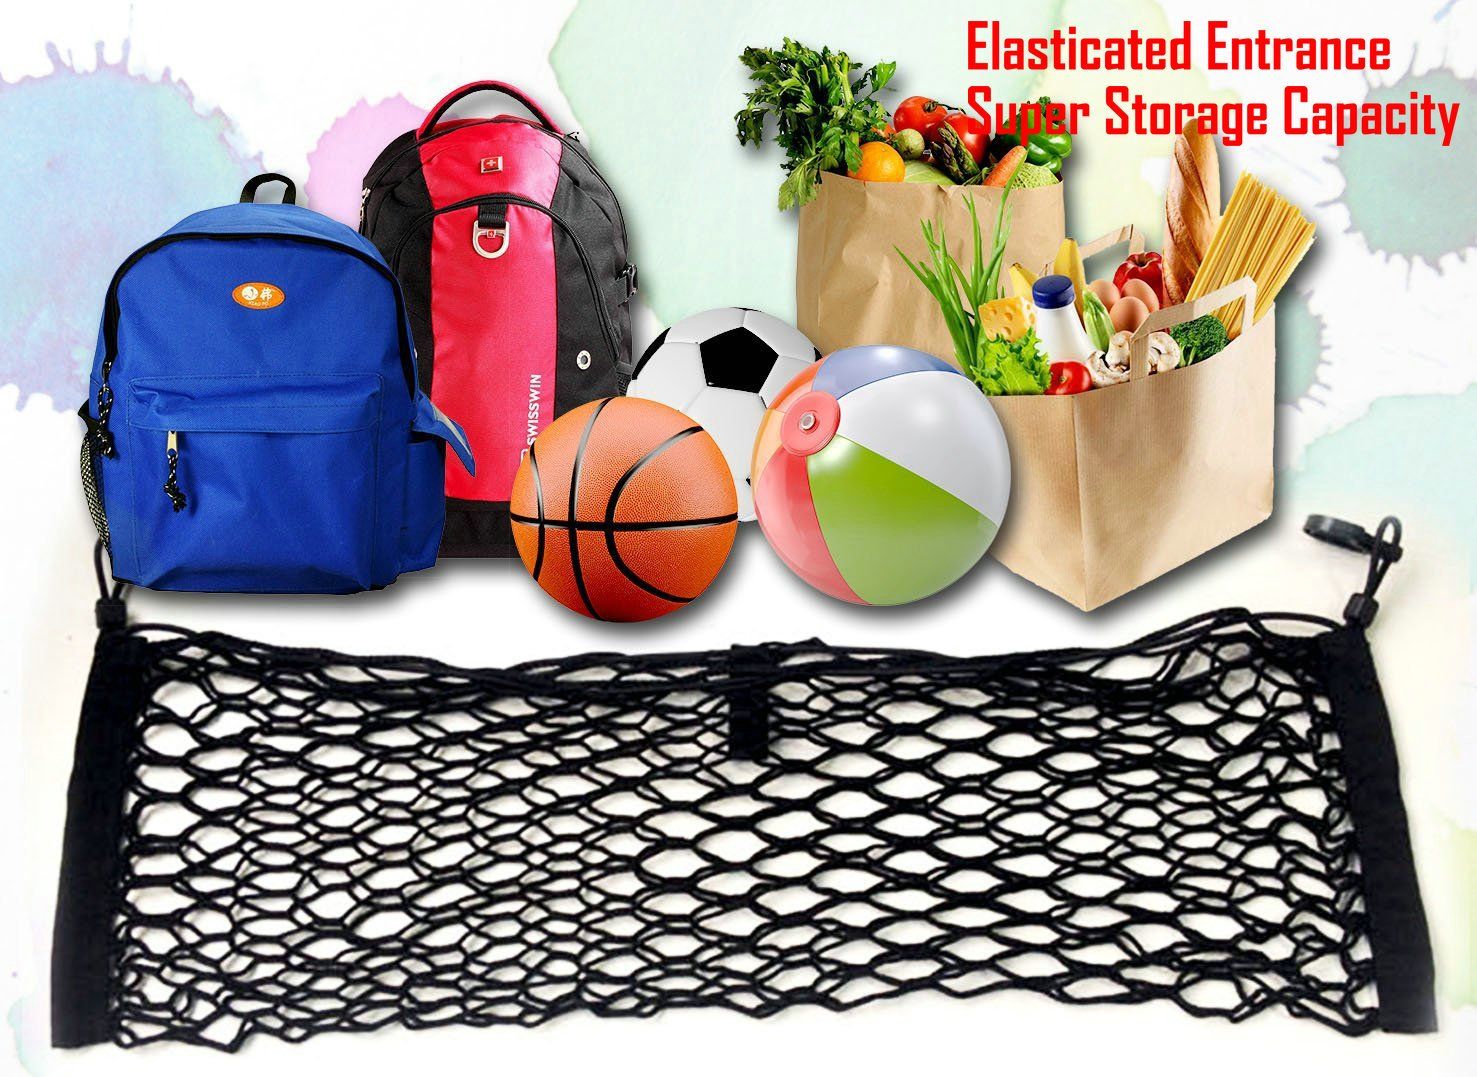 ZILONG Cargo Net Hammock Trunk Organizer Vehicle Storage with 4 Adjustable Hook Black Y123